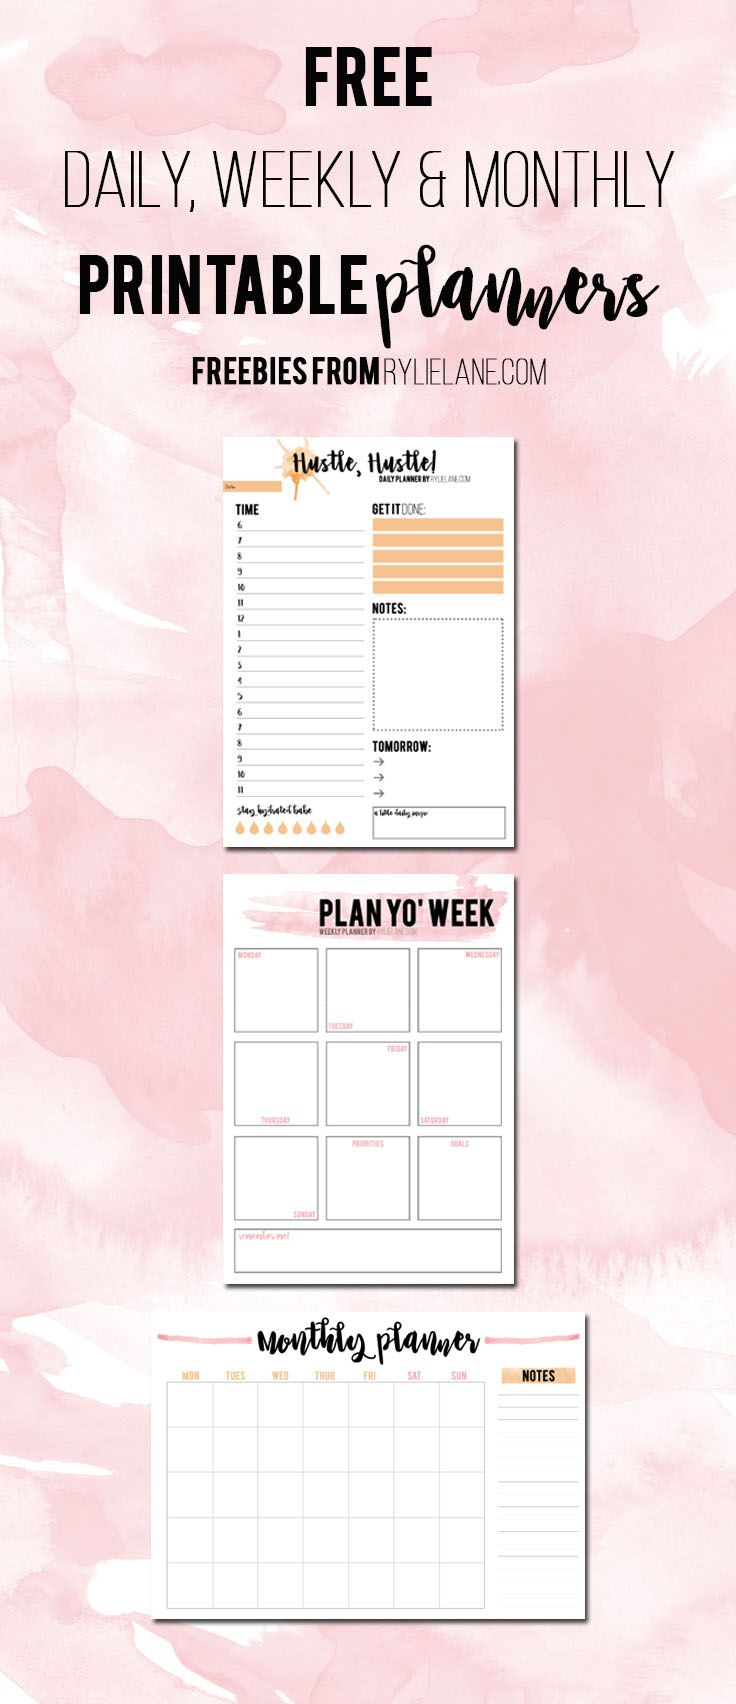 Free Printable Daily, Weekly & Monthly Planners - Stay on top of your organization game with these 2017 planning sheets